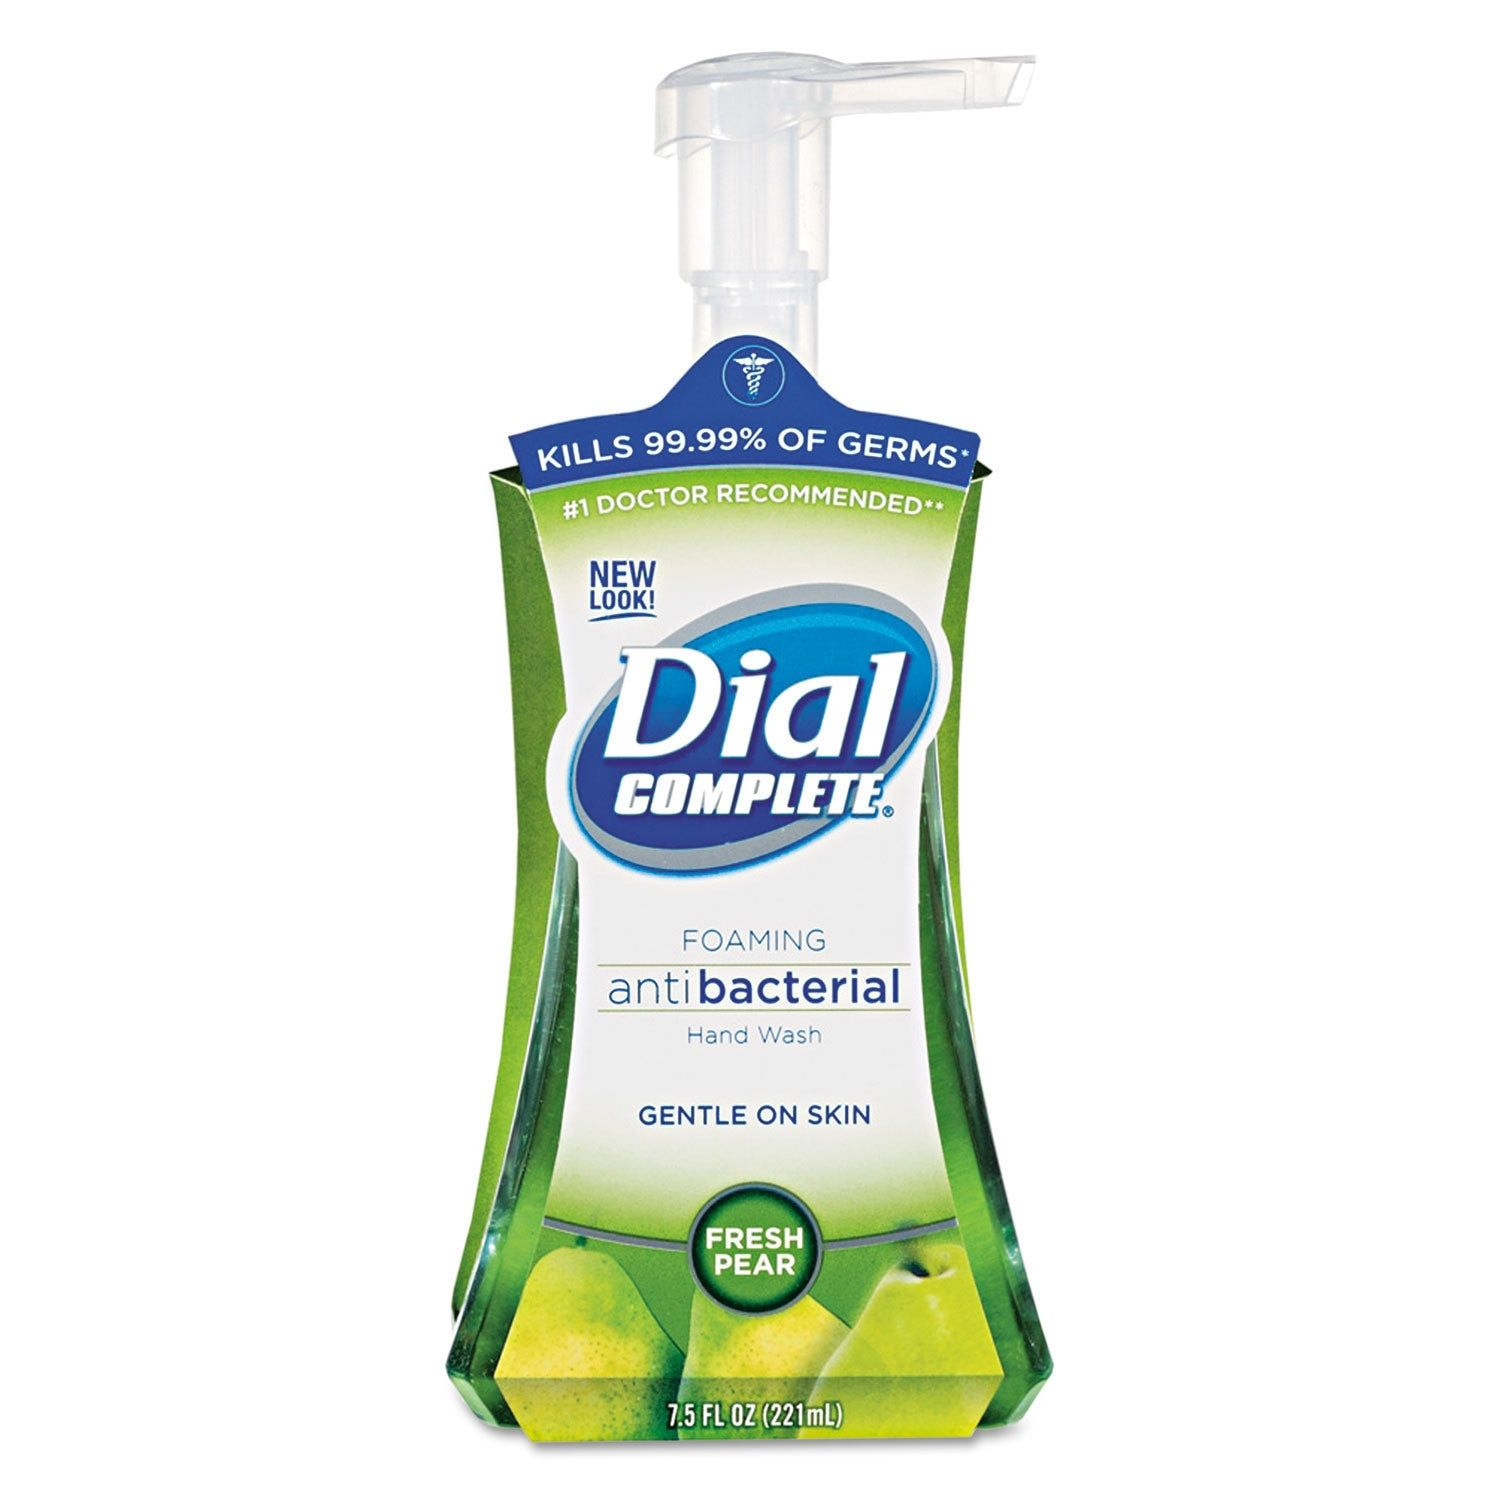 Dial Professional Antimicrobial Foaming Hand Soap Fresh Pear 7.5-ounce Pump Bottle 8/Carton